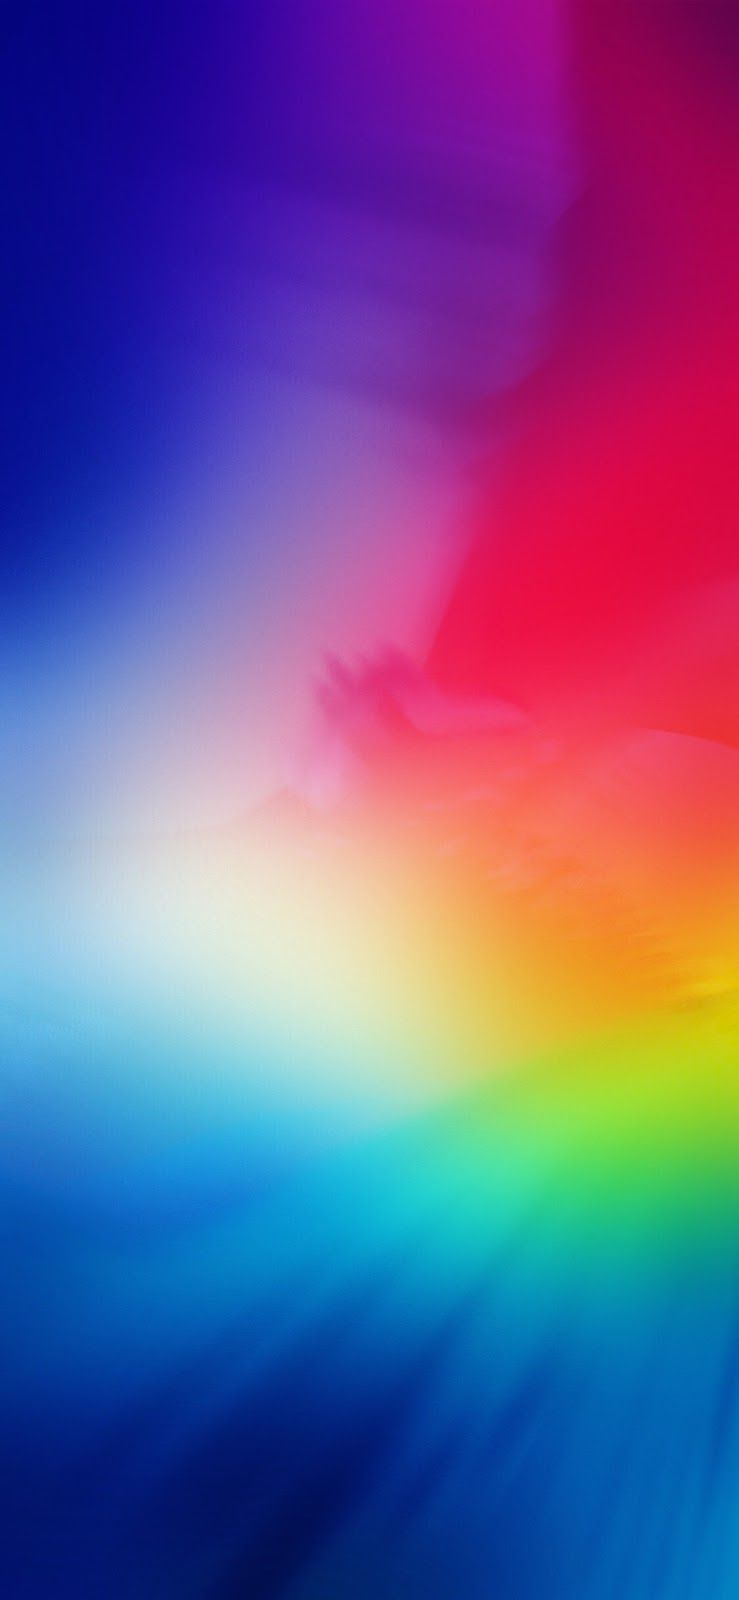 Ios12 Gradient Modd V2 By Ar72014 Iphone X Iphone 6s 7 8